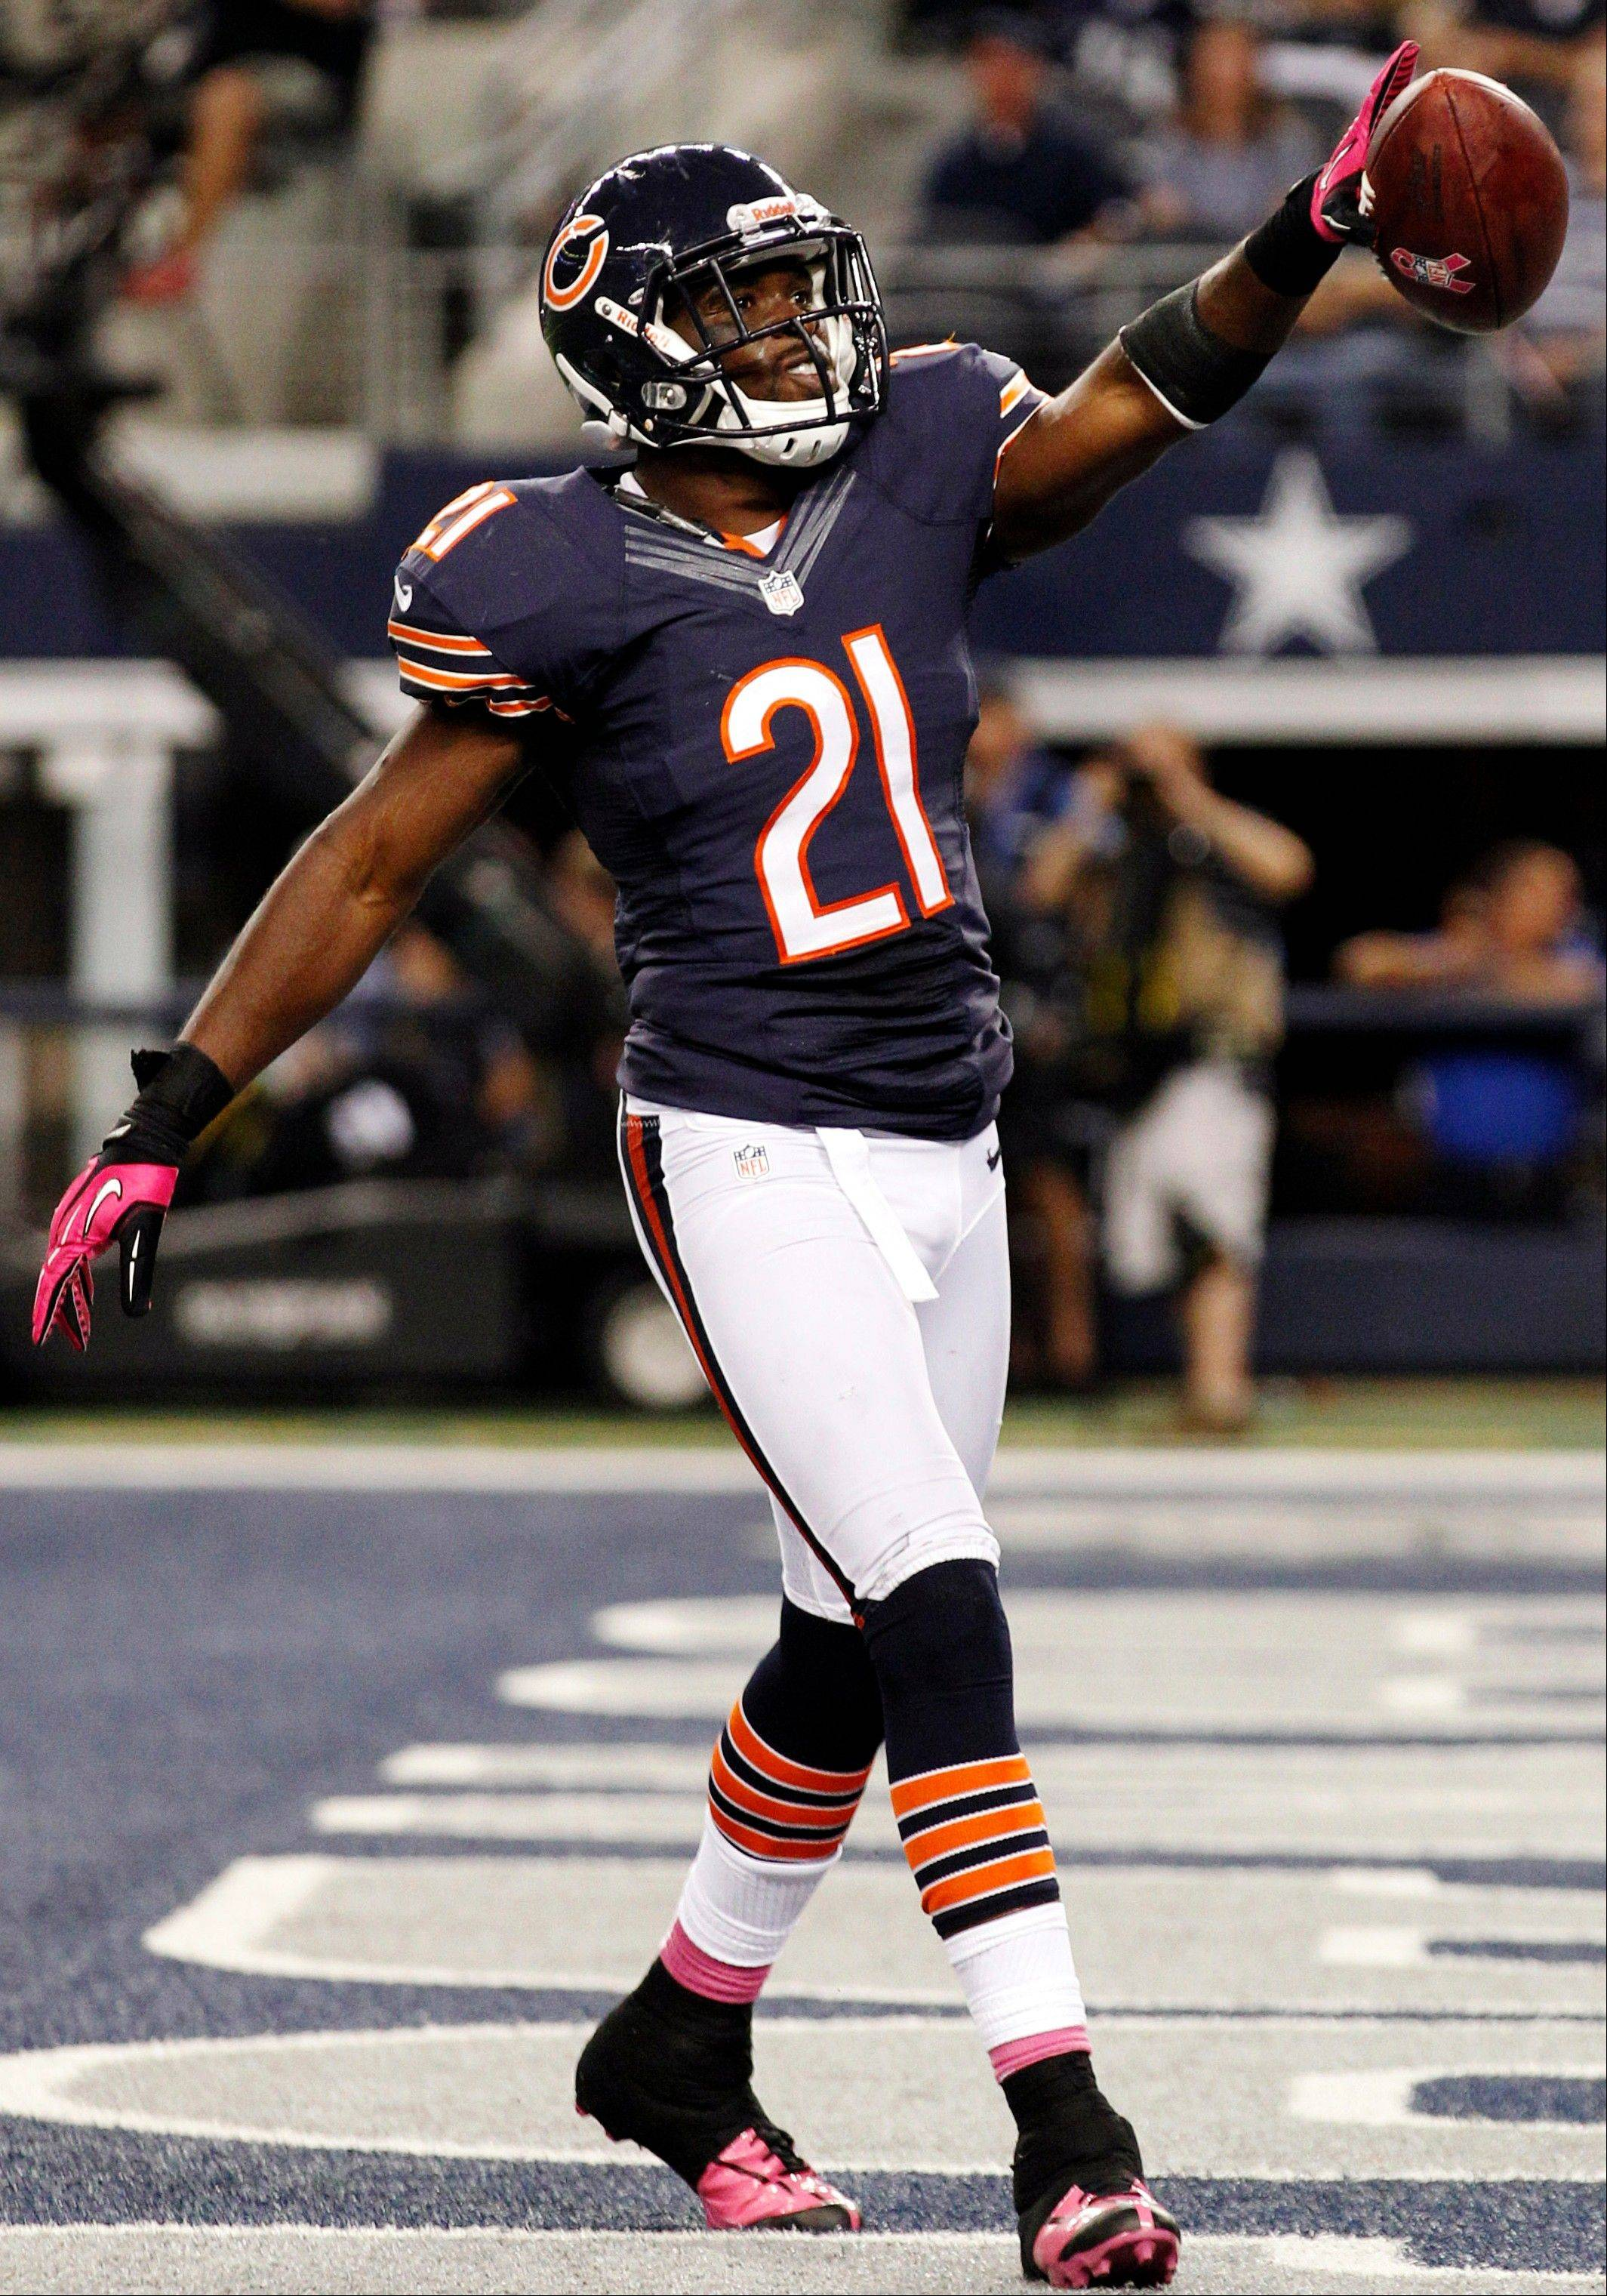 Chicago Bears strong safety Major Wright celebrates his interception against the Dallas Cowboys during the second half.